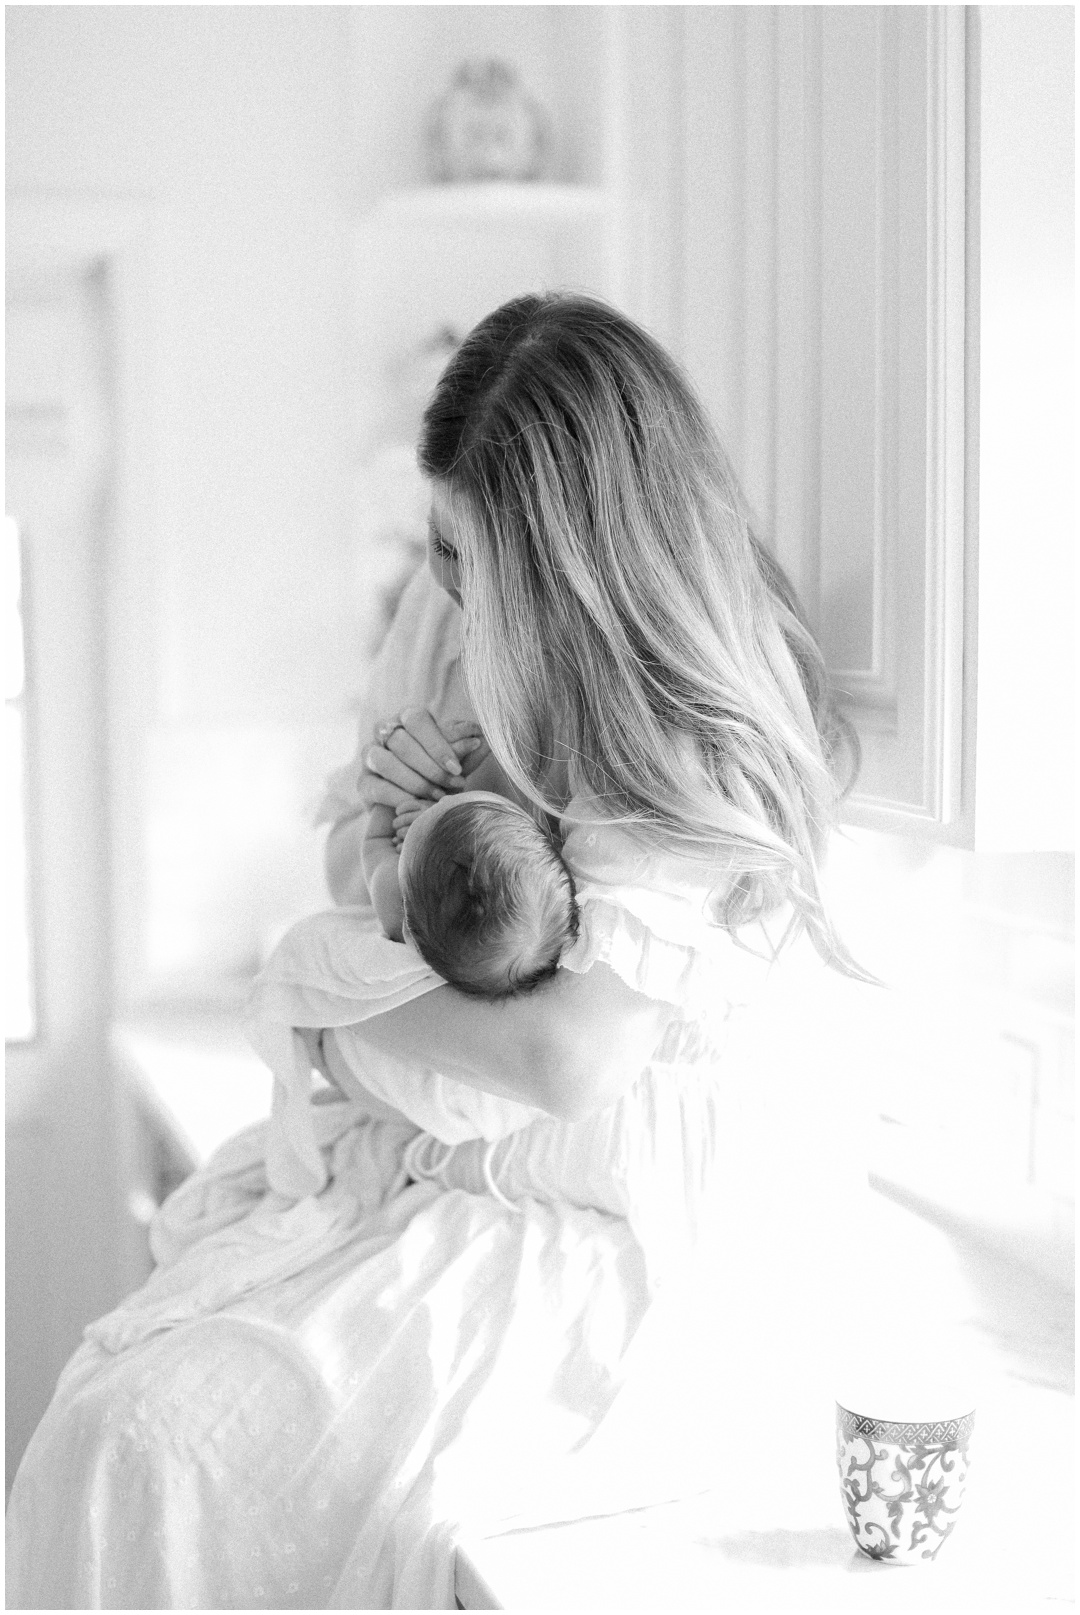 Newport_Beach_Newborn_Light_Airy_Natural_Photographer_Newport_Beach_Photographer_Orange_County_Family_Photographer_Cori_Kleckner_Photography_Huntington_Beach_Photographer_Family_OC_Maternity_Breanna_Santillo__3670.jpg